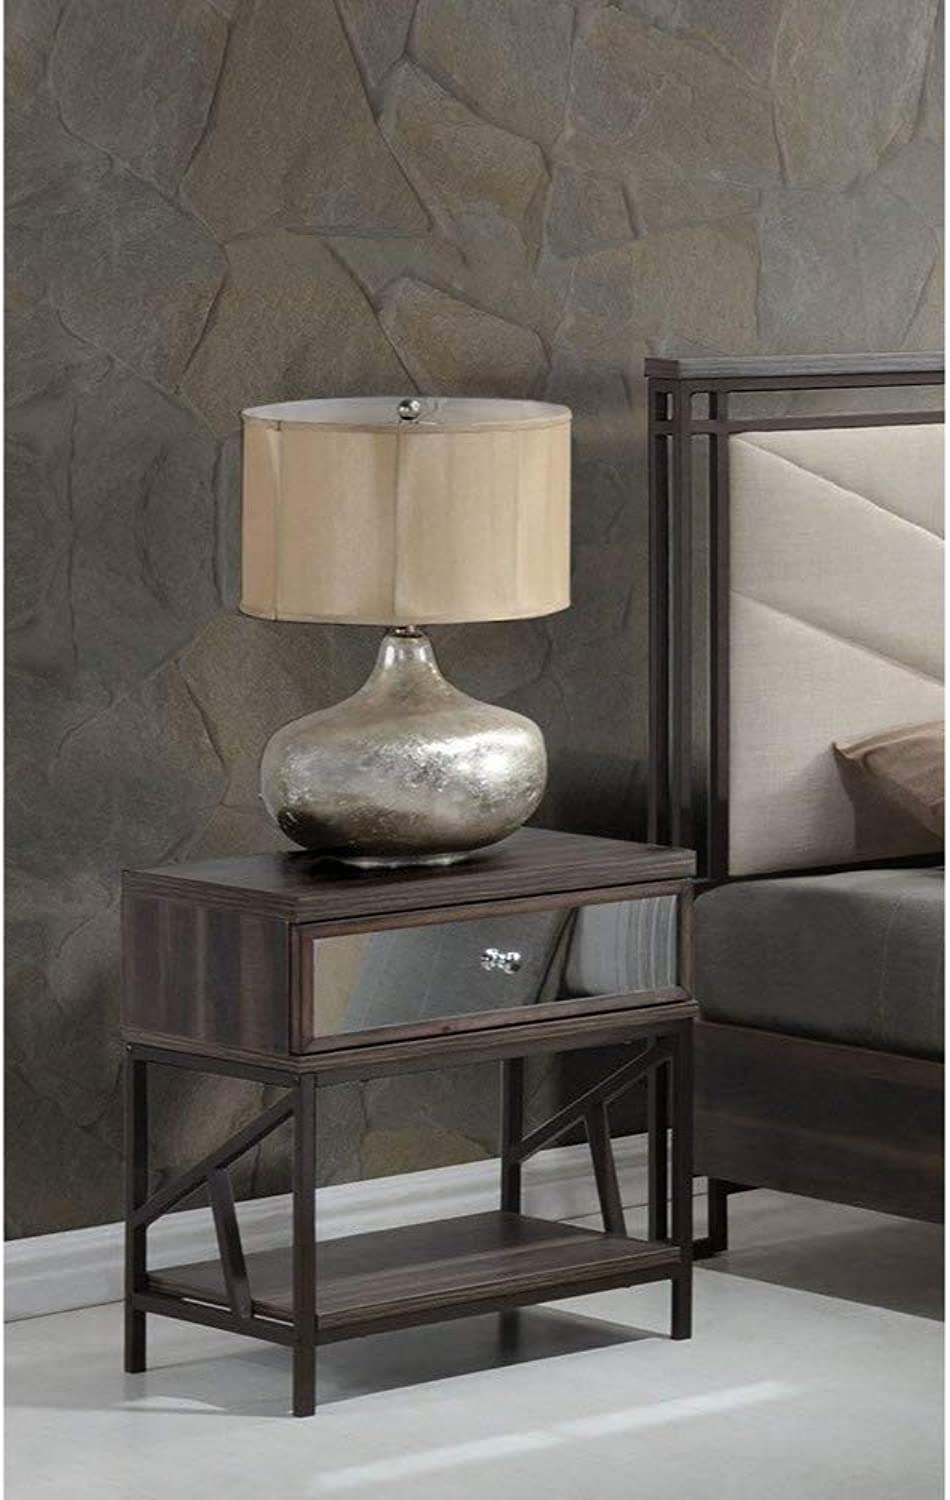 Benzara Wood and Metal Nightstand with Mirrored Front Drawer, Brown and Black